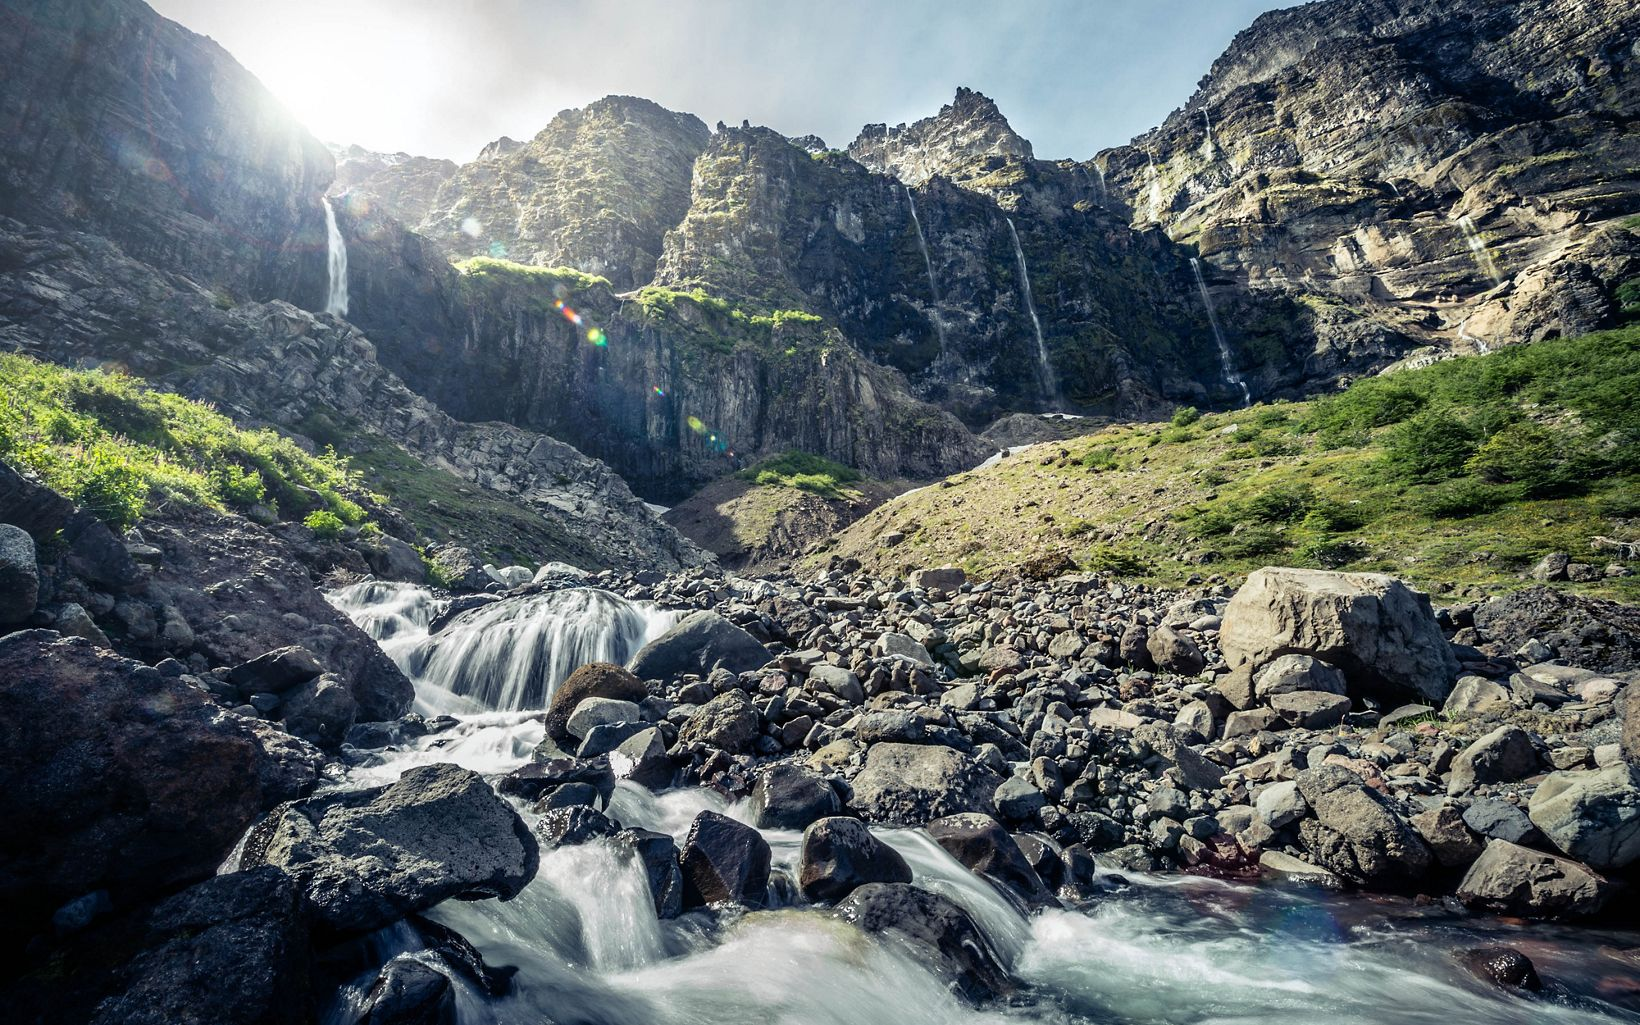 Waterfalls and upland streams cascading from Mount Tronador in Vicente Perez Rosales National Park.